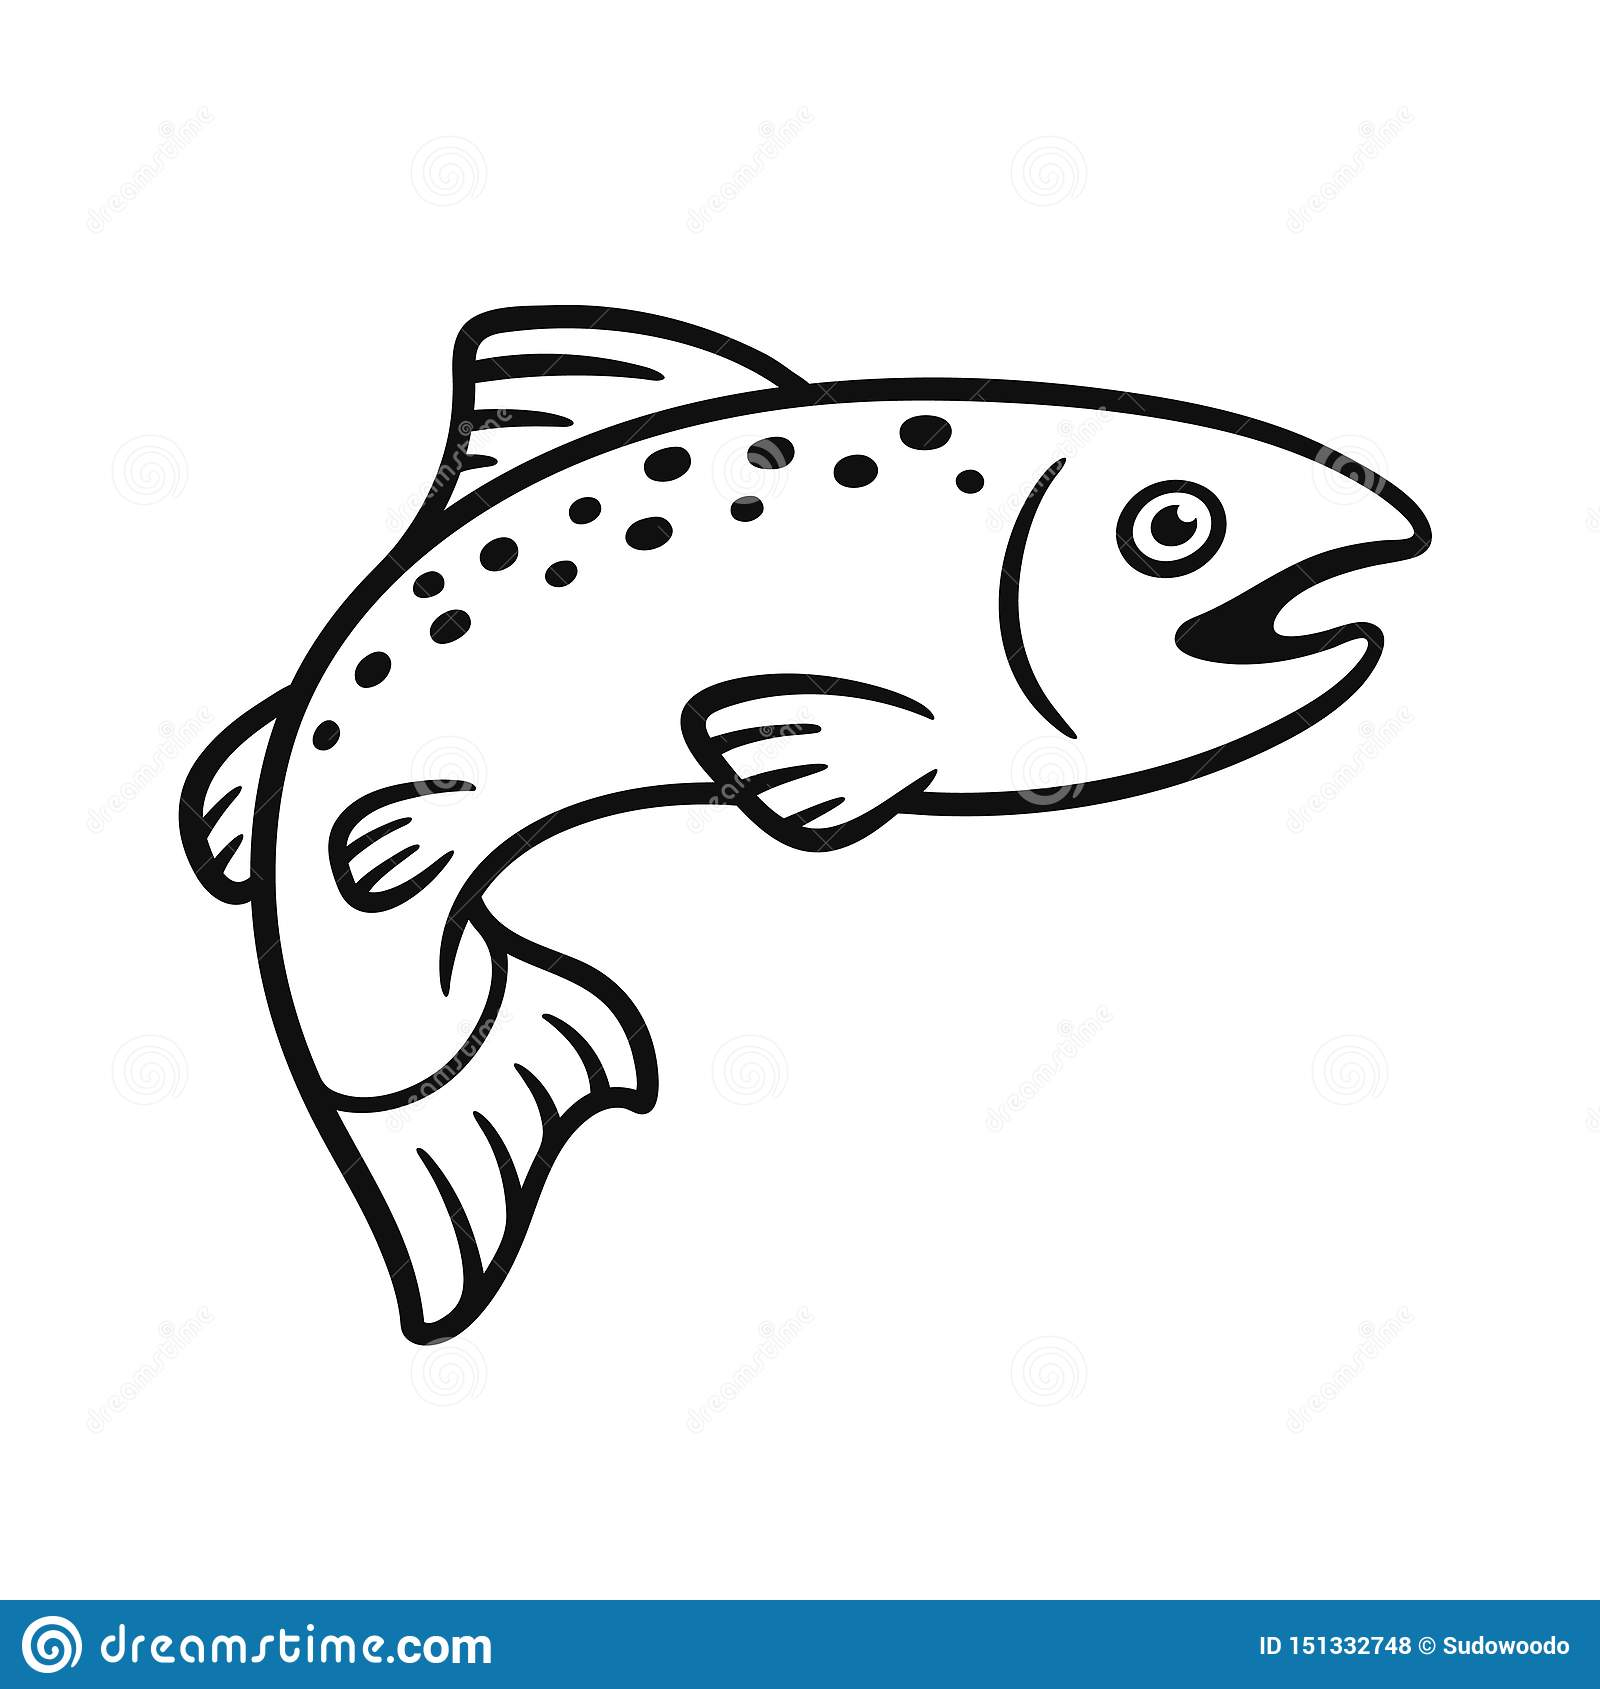 This is an image of Playful Fish Drawing Simple